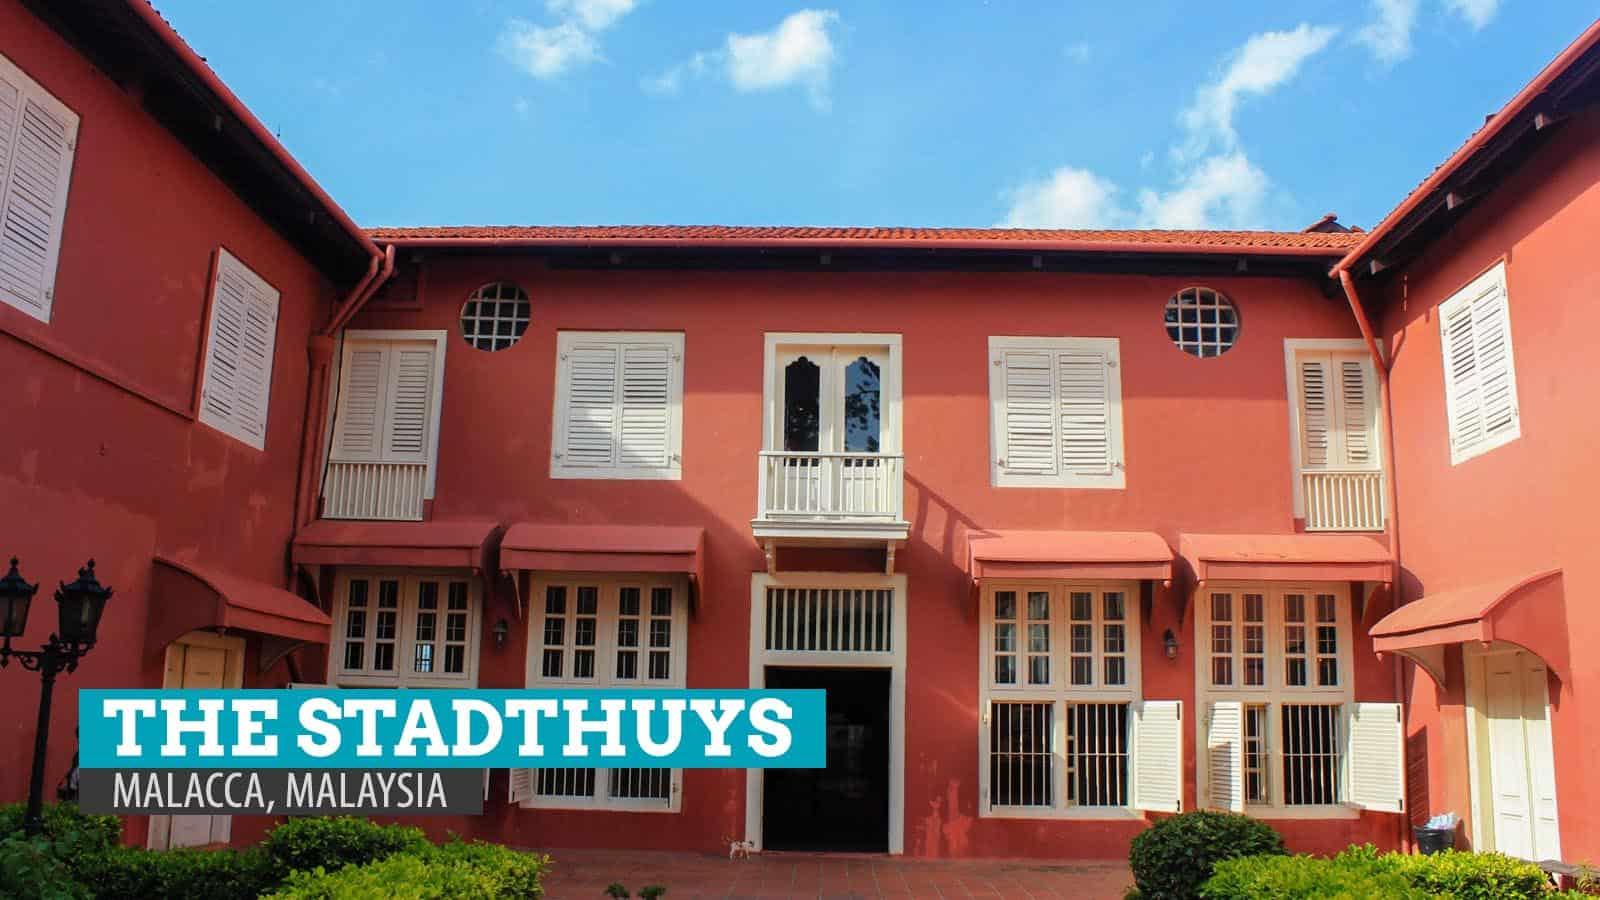 THE STADTHUYS TOWN HALL: Museum of History, Ethnography, and Literature of Malacca, Malaysia